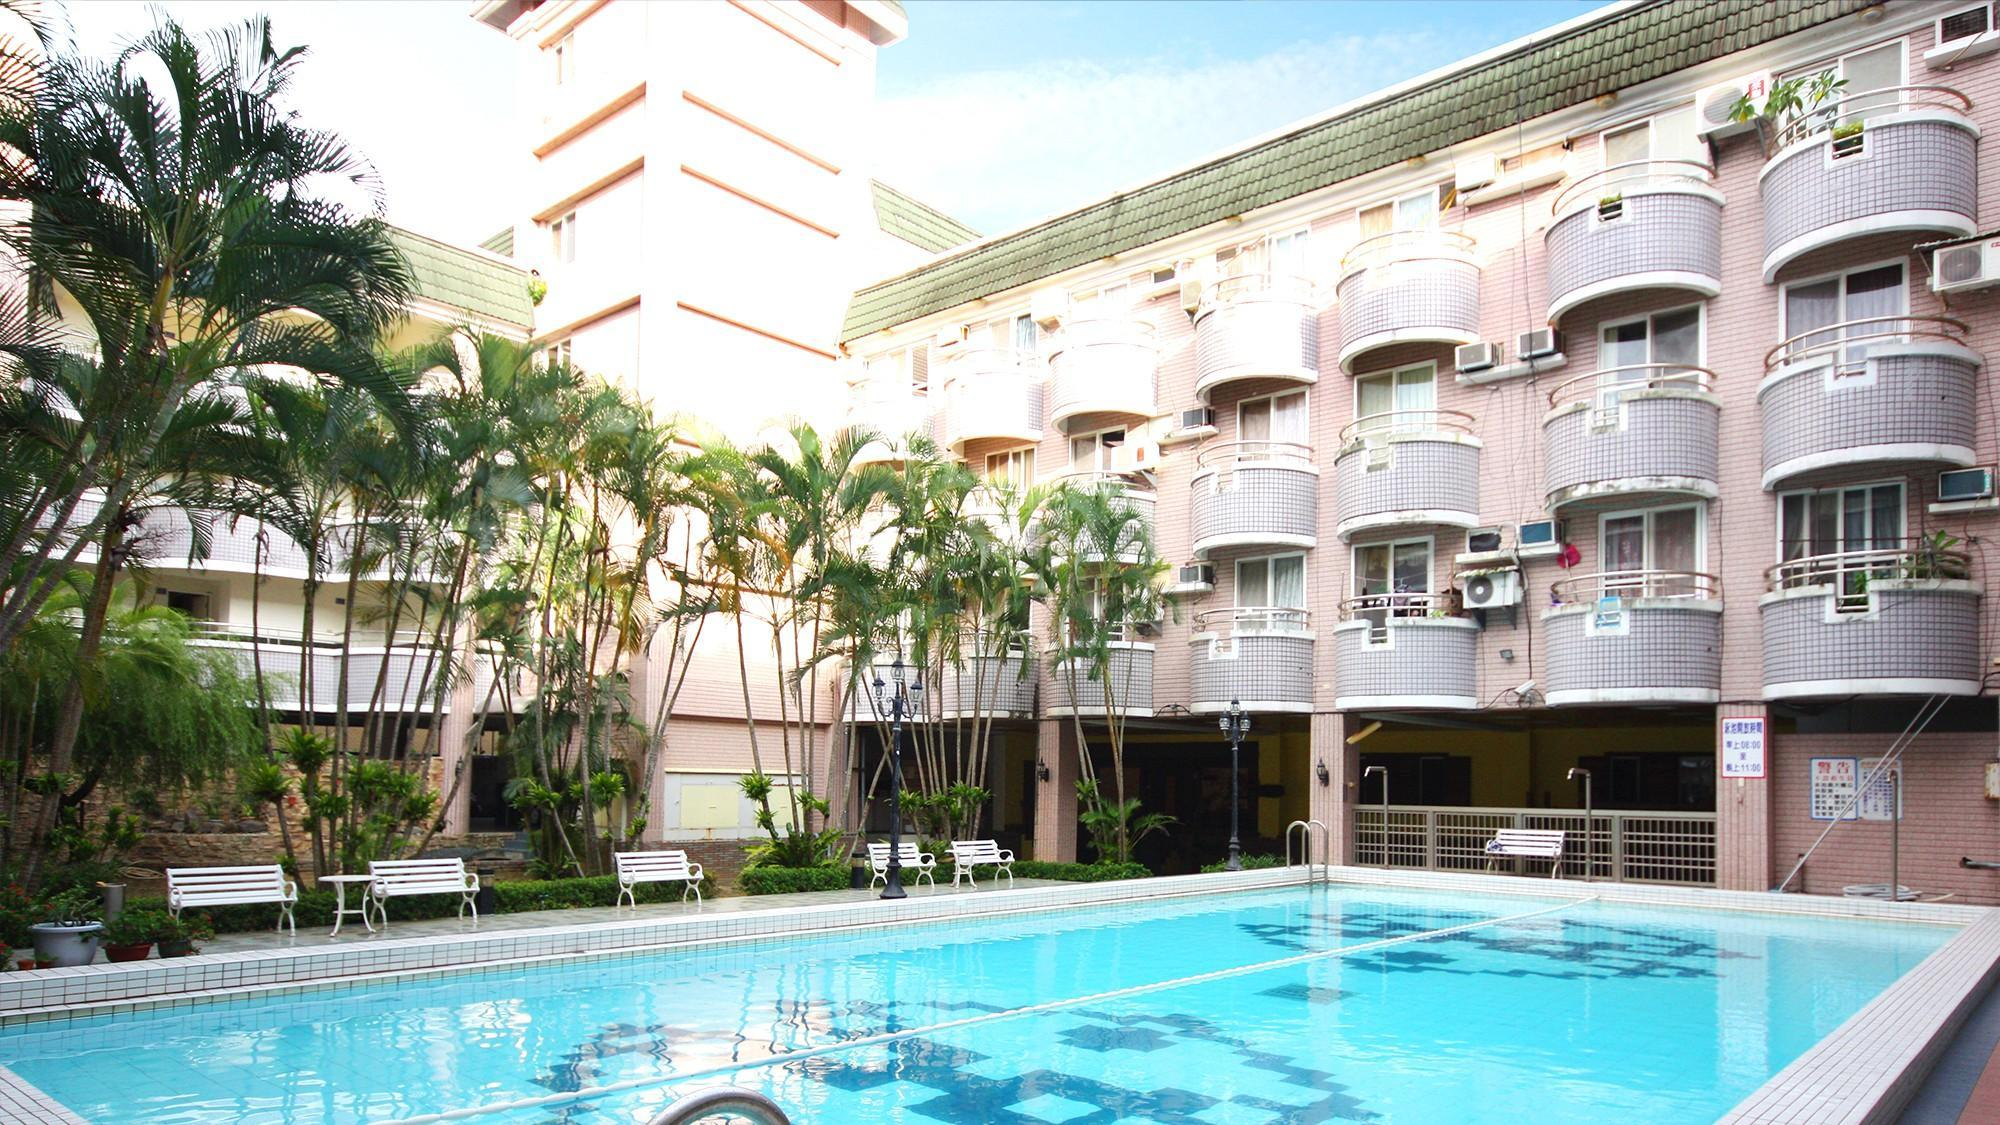 Midsummer Kenting Bed And Breakfast